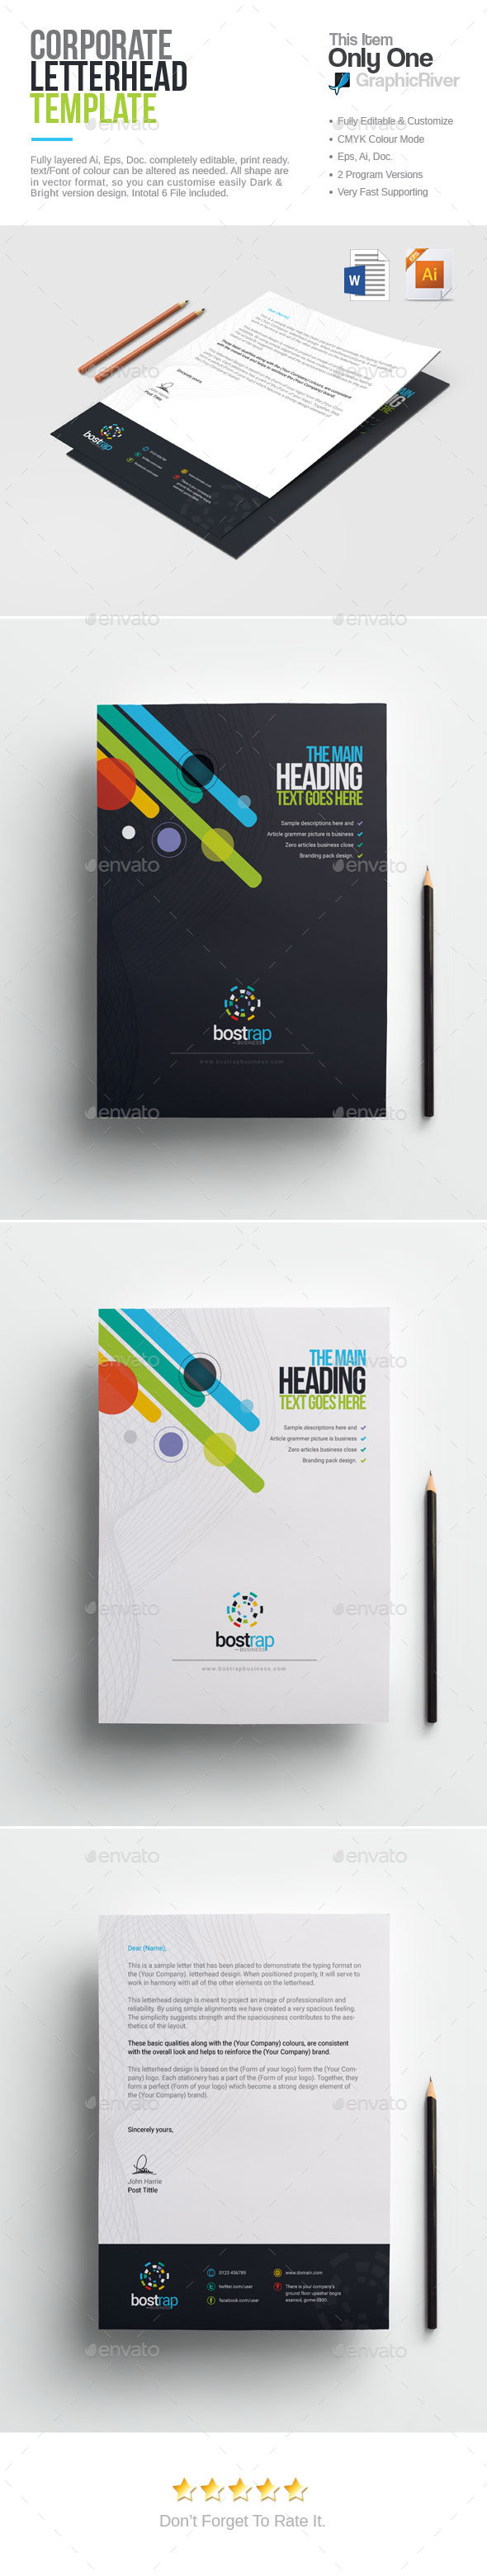 Letterhead template stationery print templates download here letterhead template stationery print templates download here https graphicriver spiritdancerdesigns Choice Image